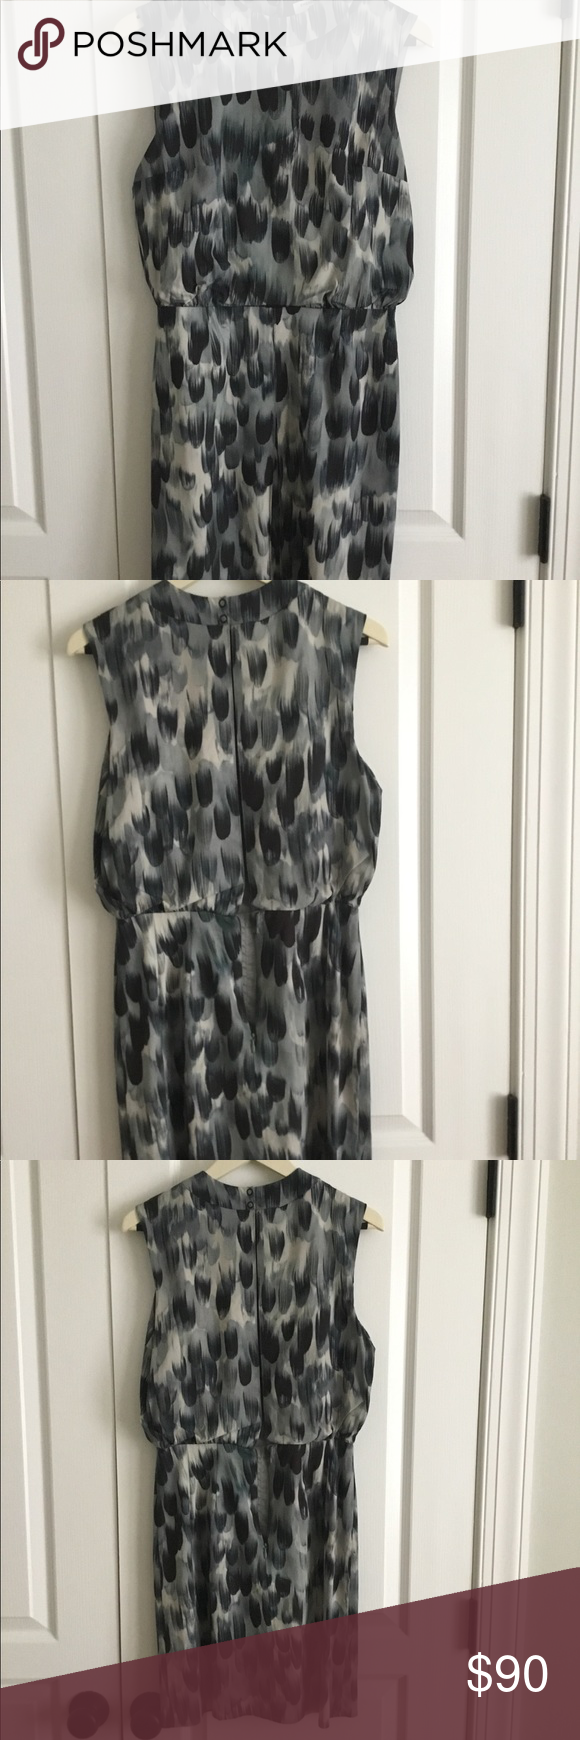 Emerson Fry Dress Emerson Fry Dress NWT Emerson Fry Dresses #emersonfry Emerson Fry Dress Emerson Fry Dress NWT Emerson Fry Dresses #emersonfry